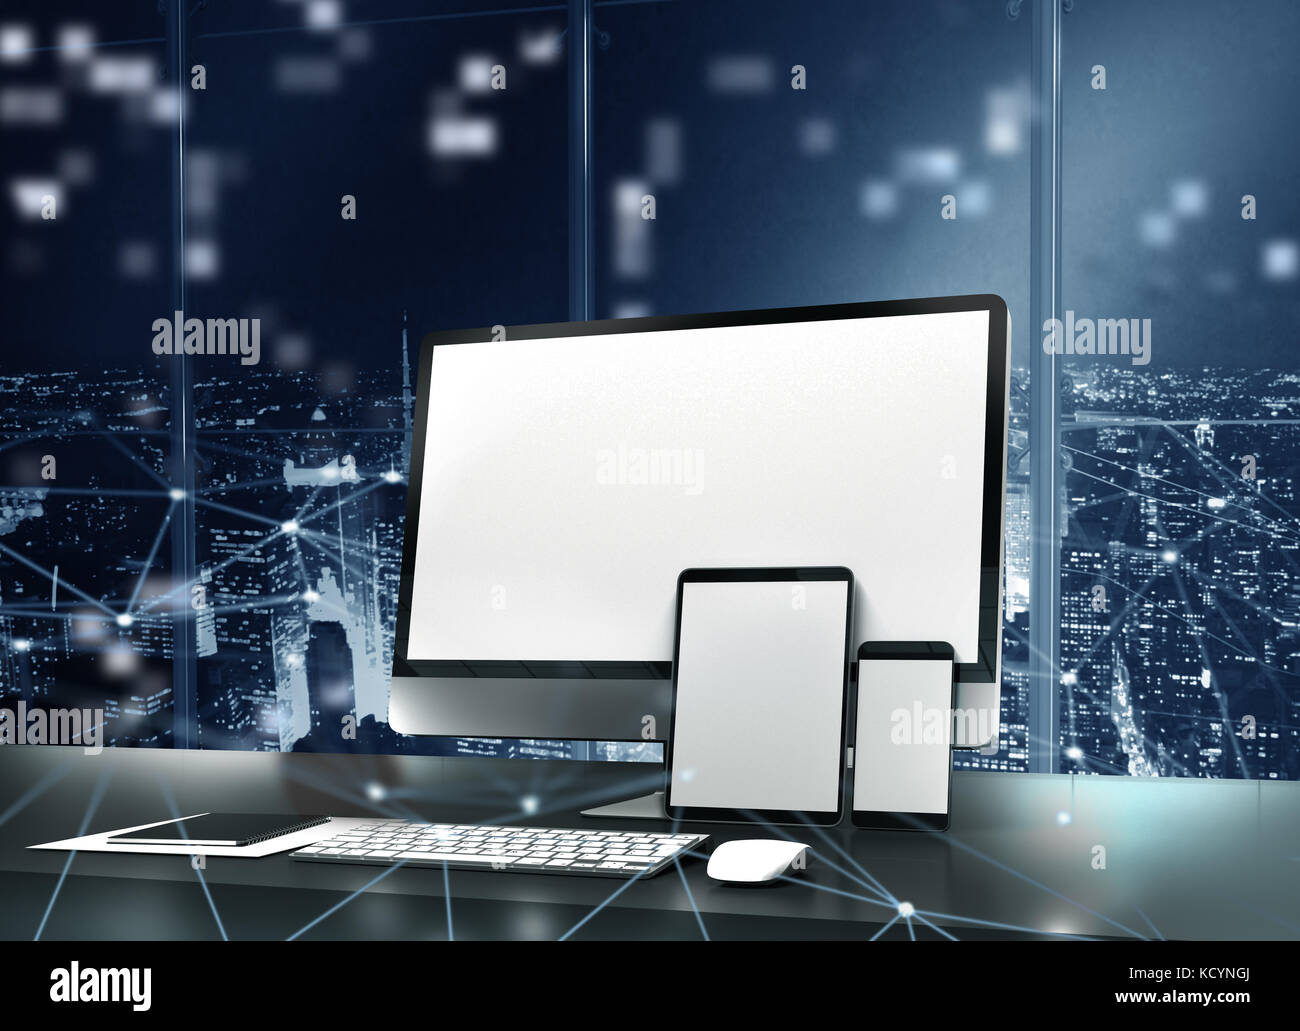 Computer, tablet and smartpone connected to internet. Concept of internet network - Stock Image